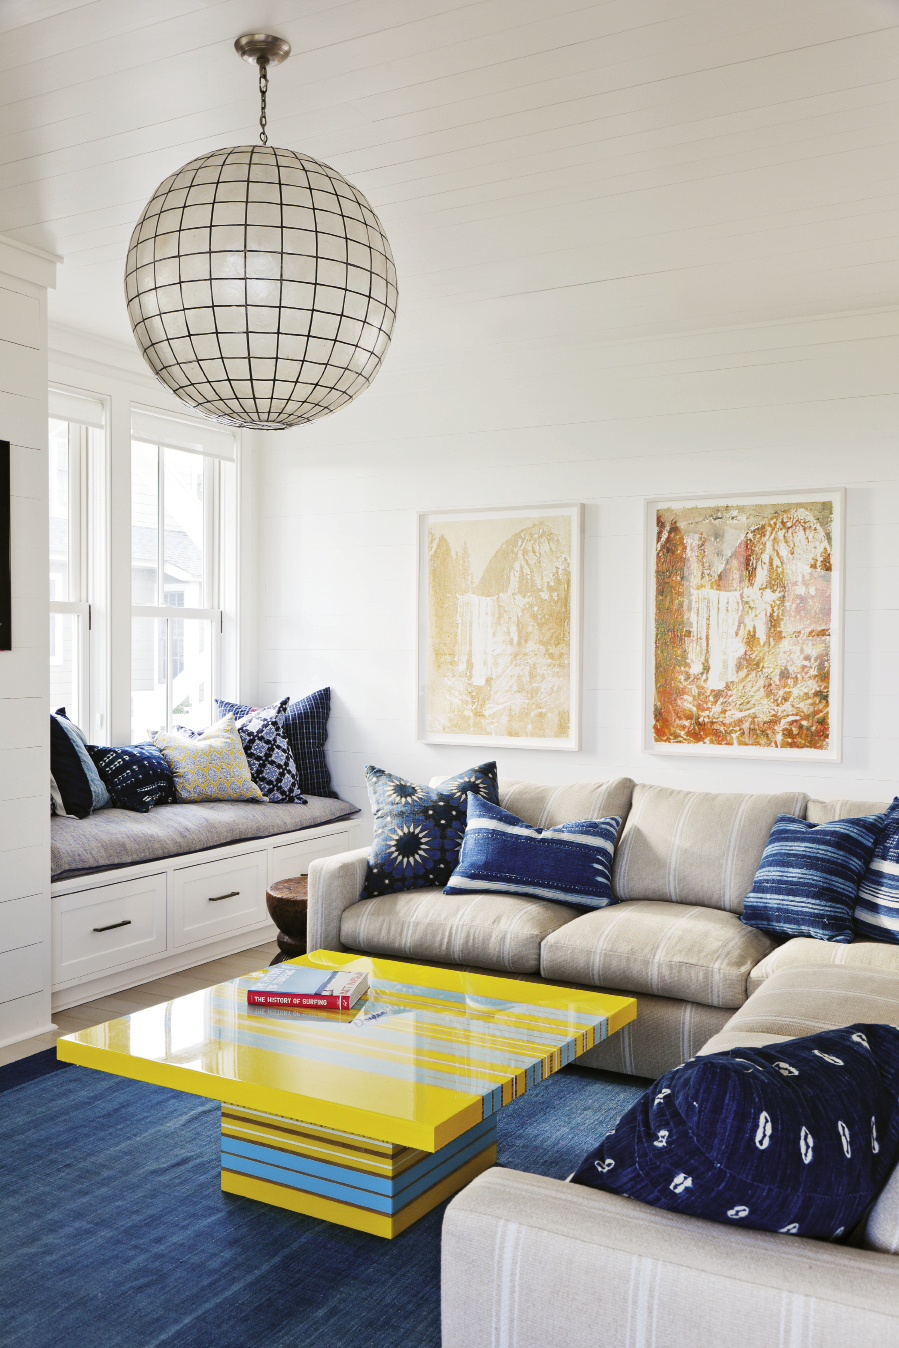 The family room hangs 10 with a bright yellow and blue surfboard-inspired table and an array of pillows made from vintage textiles. Delicious artwork by Matthew Brandt is made of Gummi Bears and Pixy Stixs.